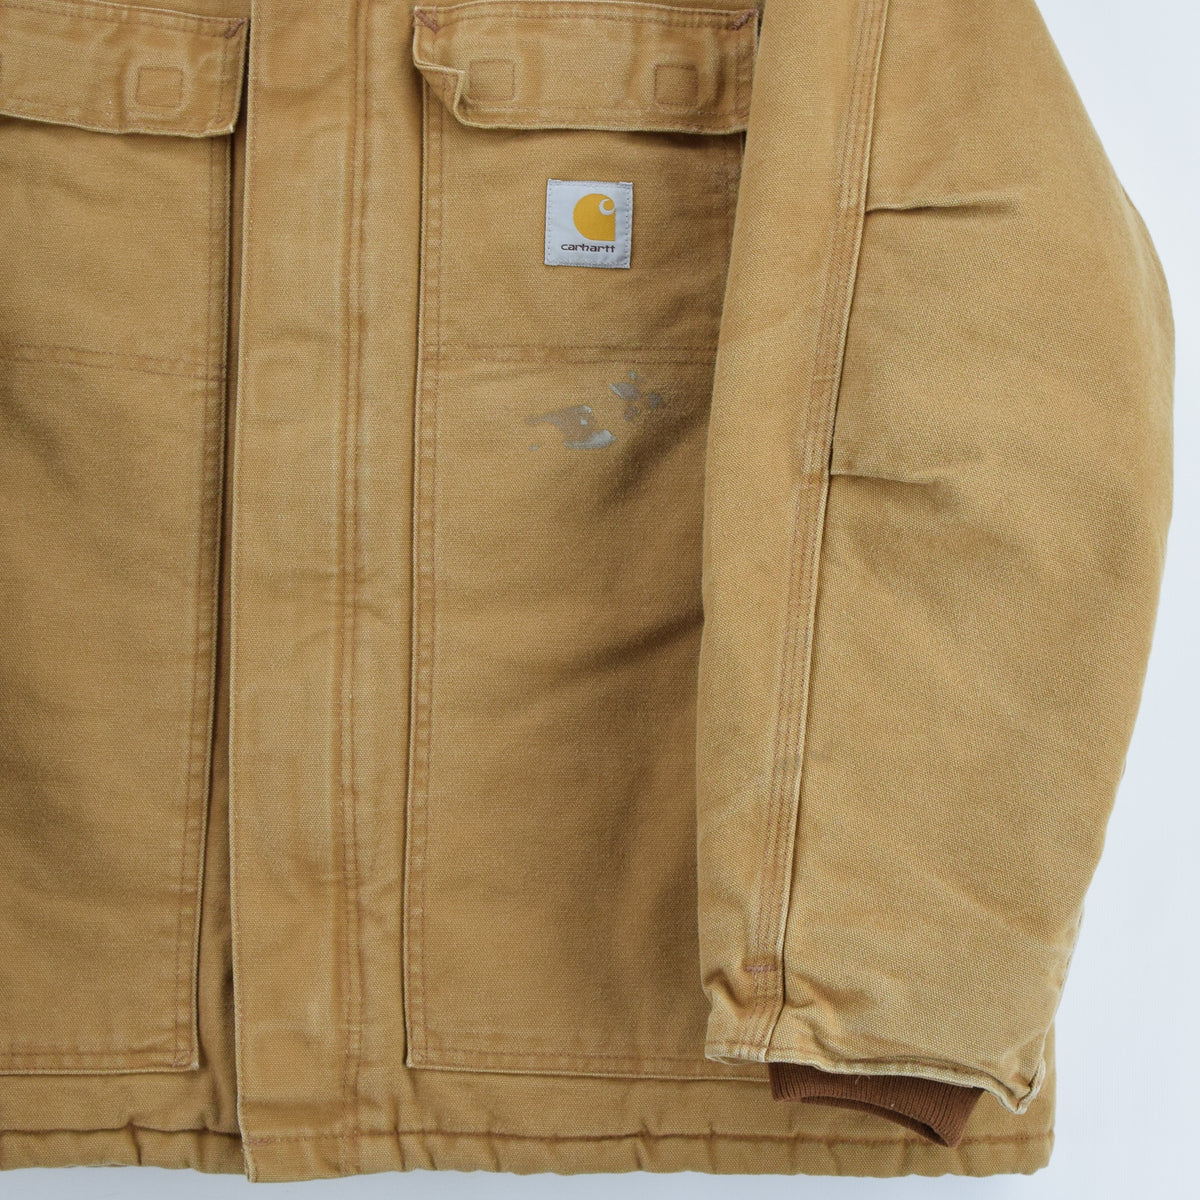 Vintage Carhartt Duck Canvas Tan Brown Worker Chore Jacket Made in USA XXL front hem